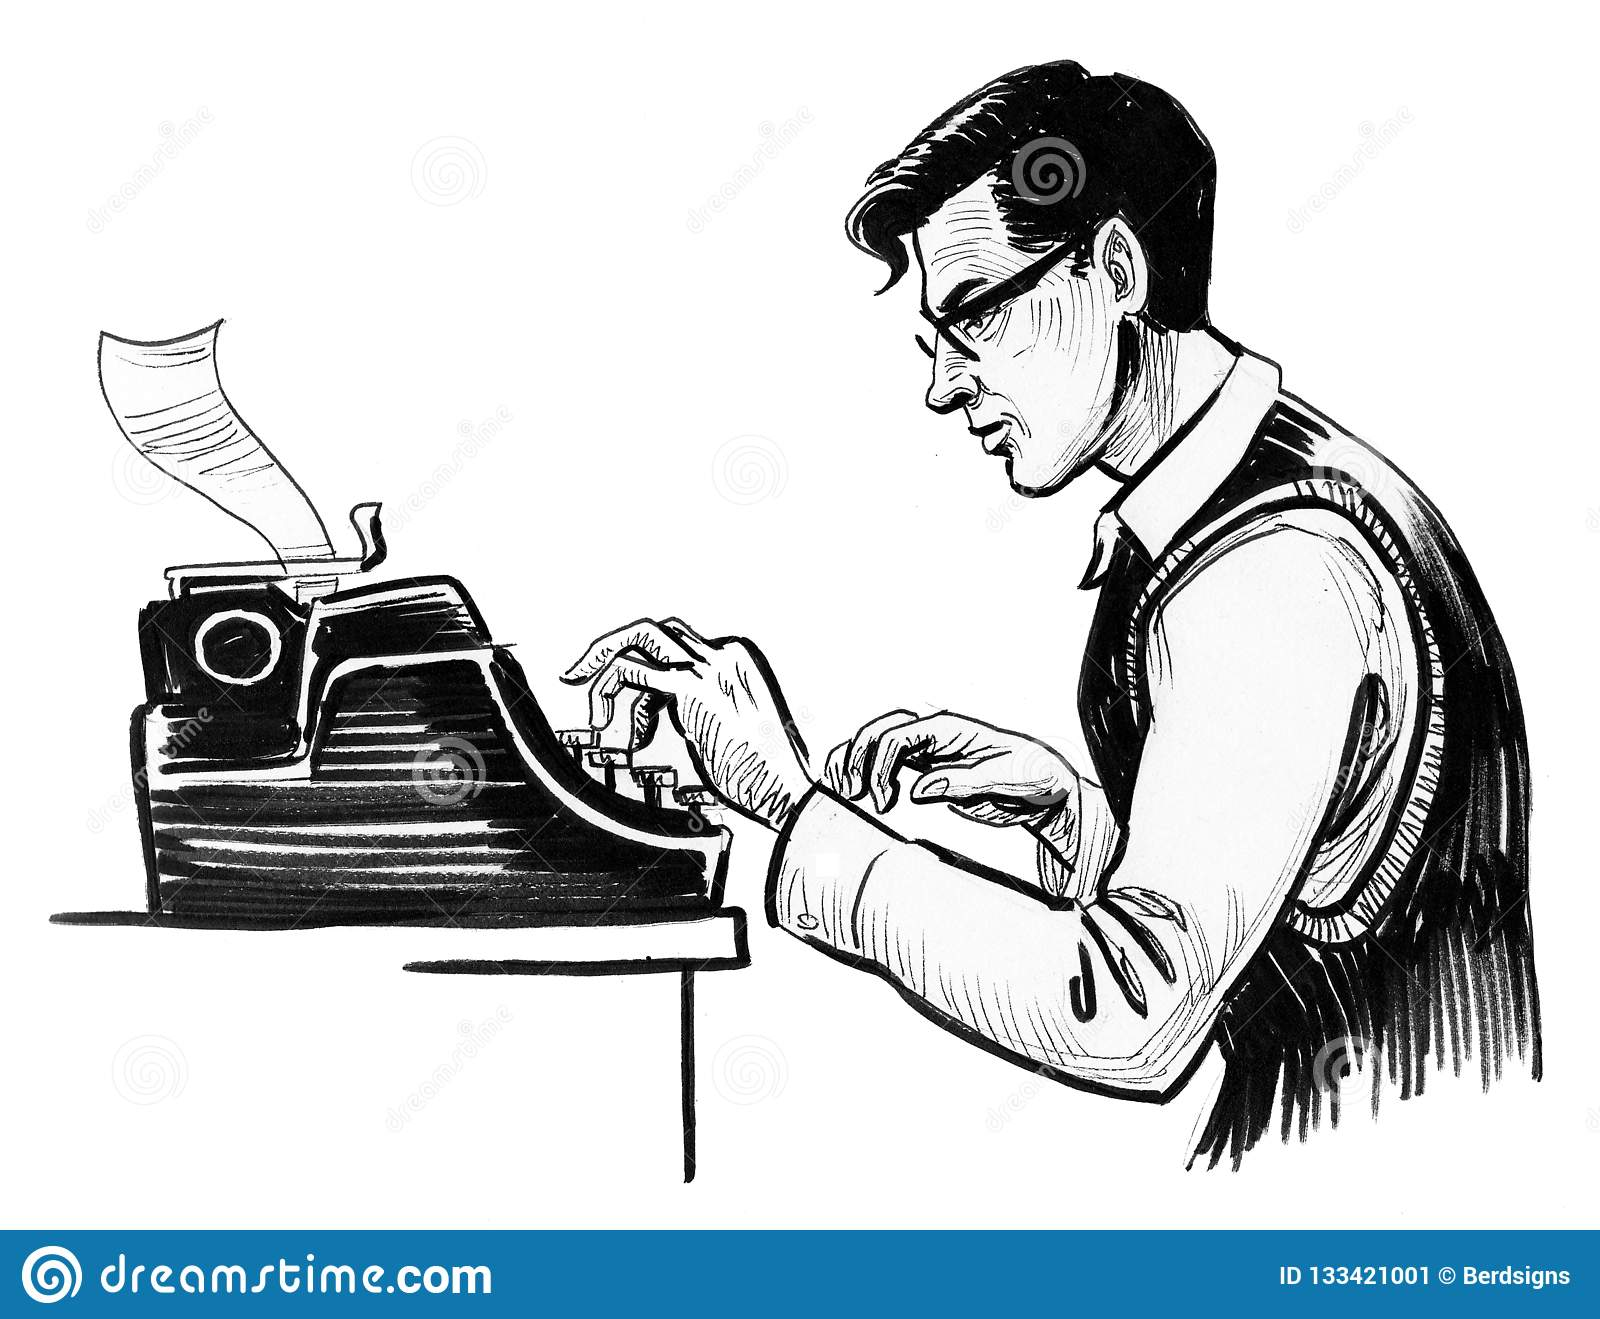 Busy writer stock illustration. Illustration of character - 133421001